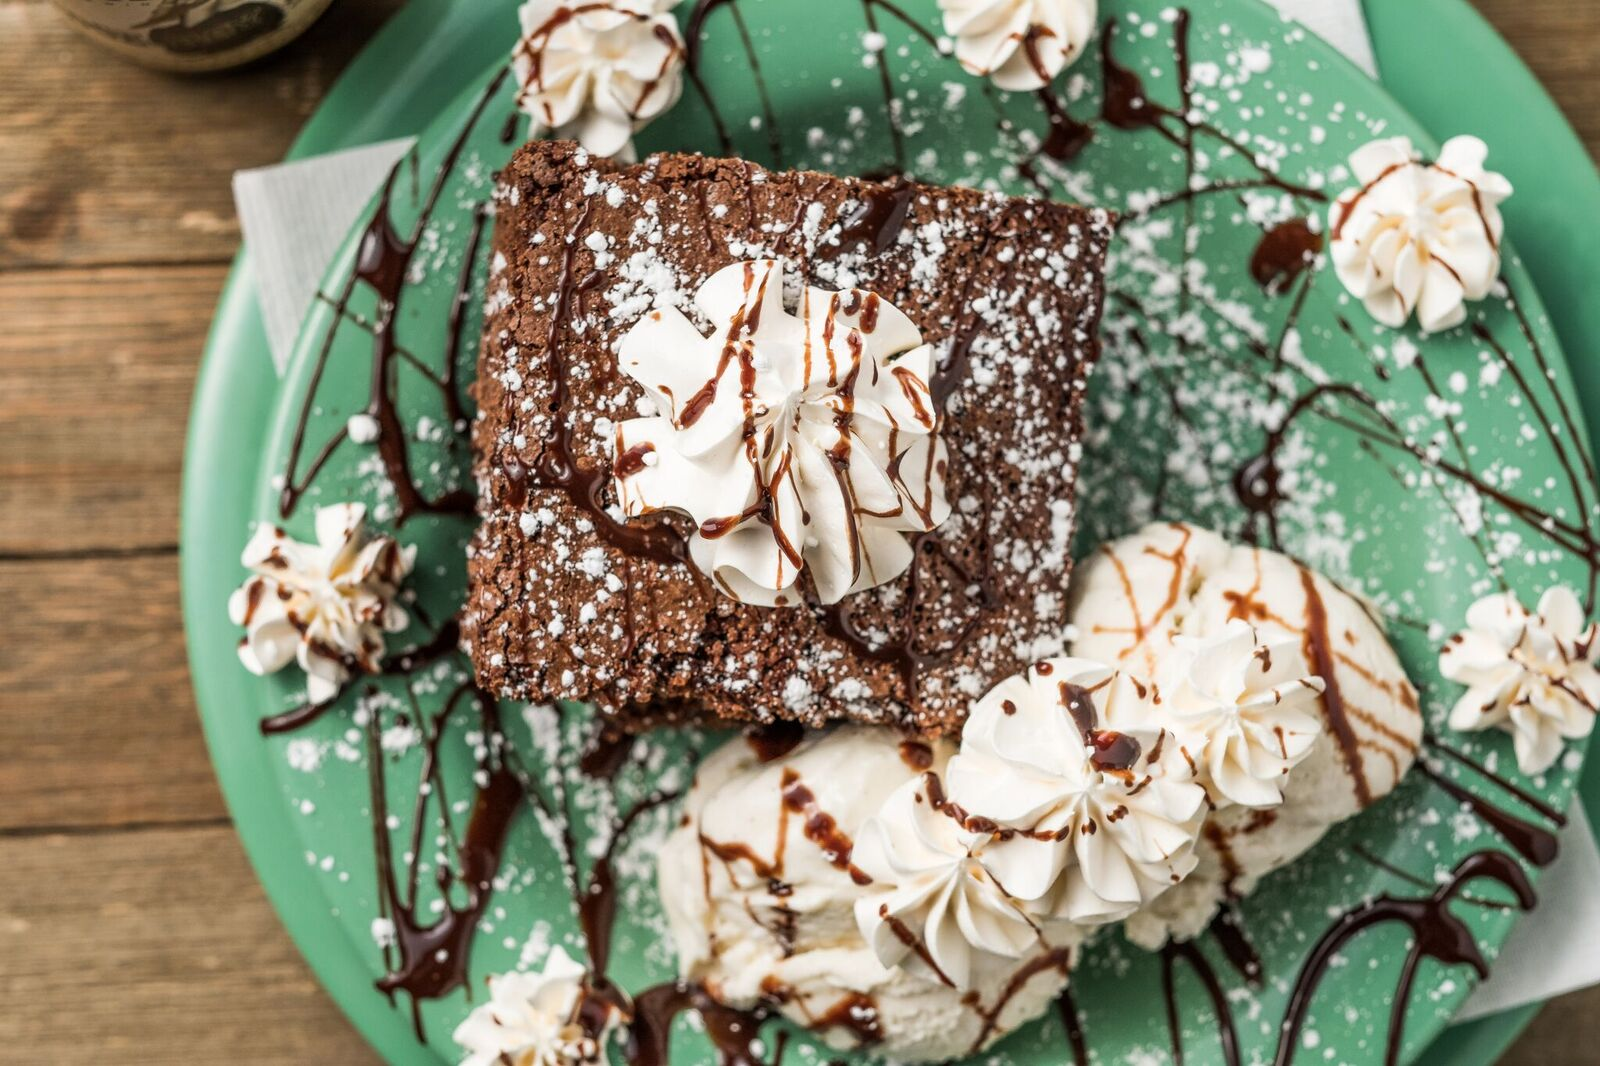 Brownie topped with whipped cream and chocolate fudge